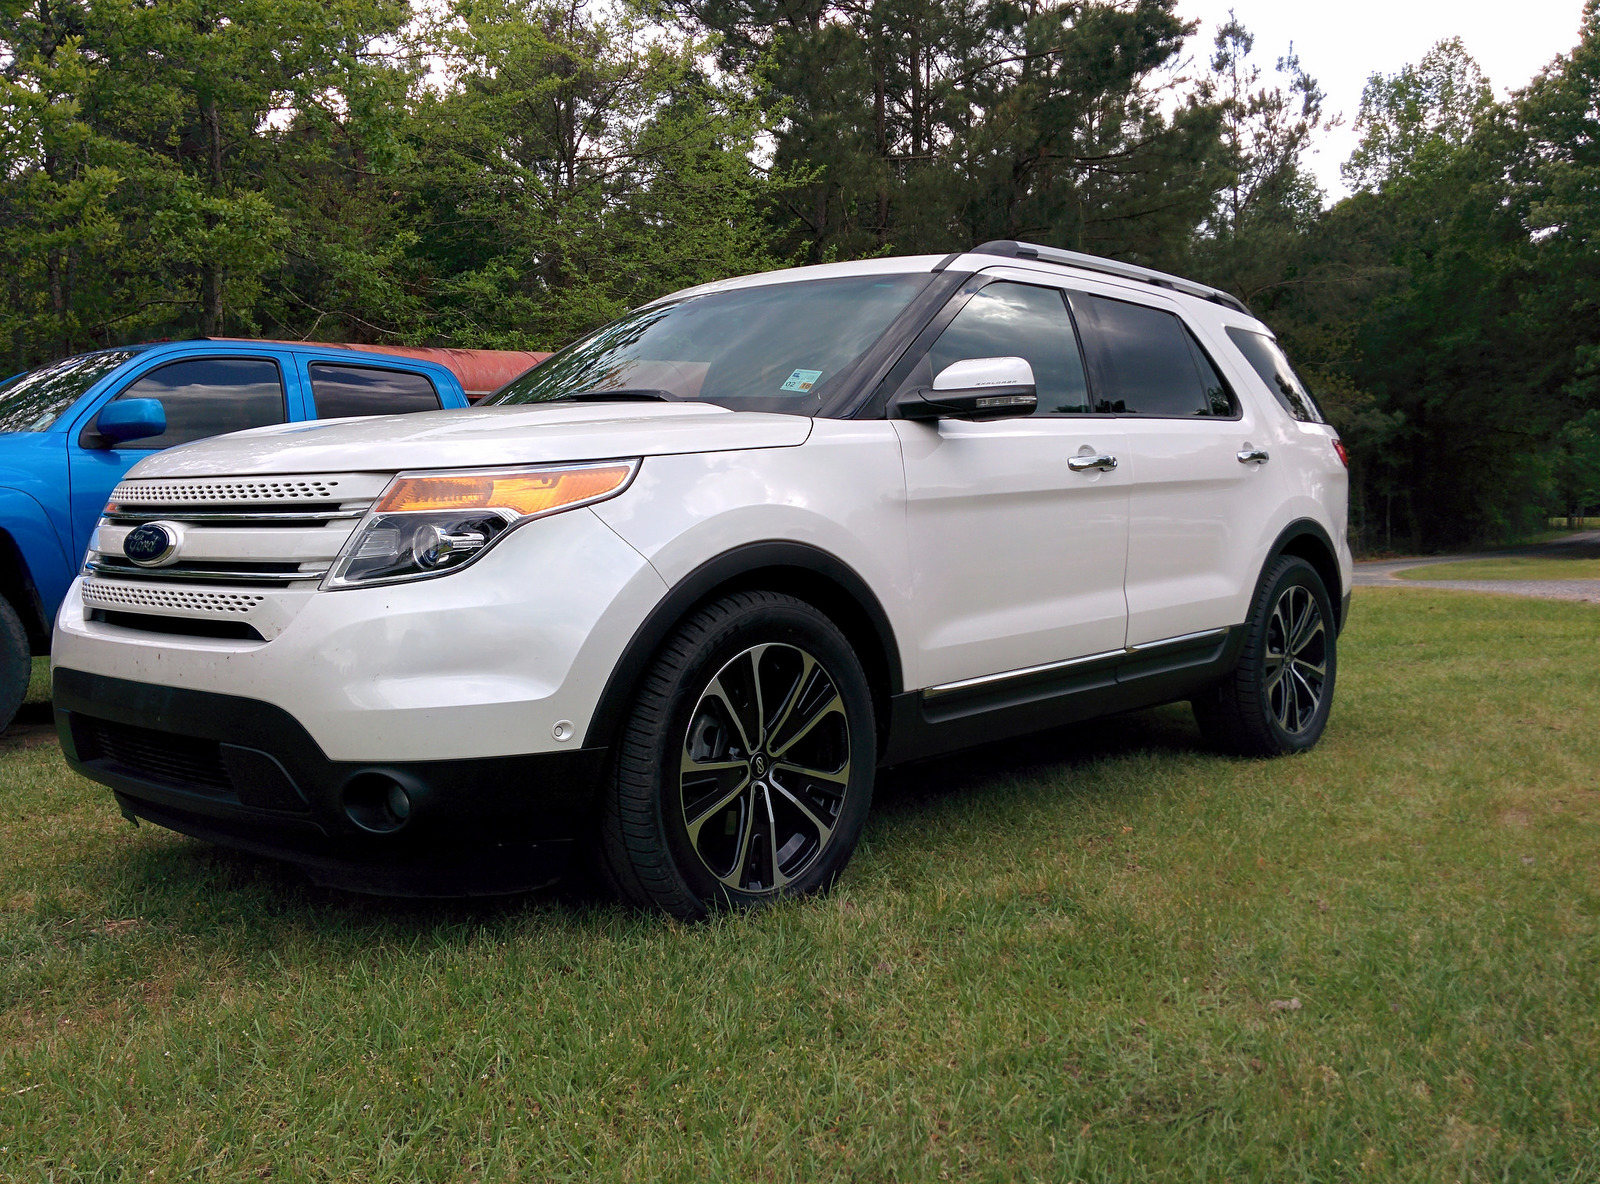 photo 1 Ford Explorer custom wheels Enkei SVX 20x, ET , tire size 265/50 R20. x ET